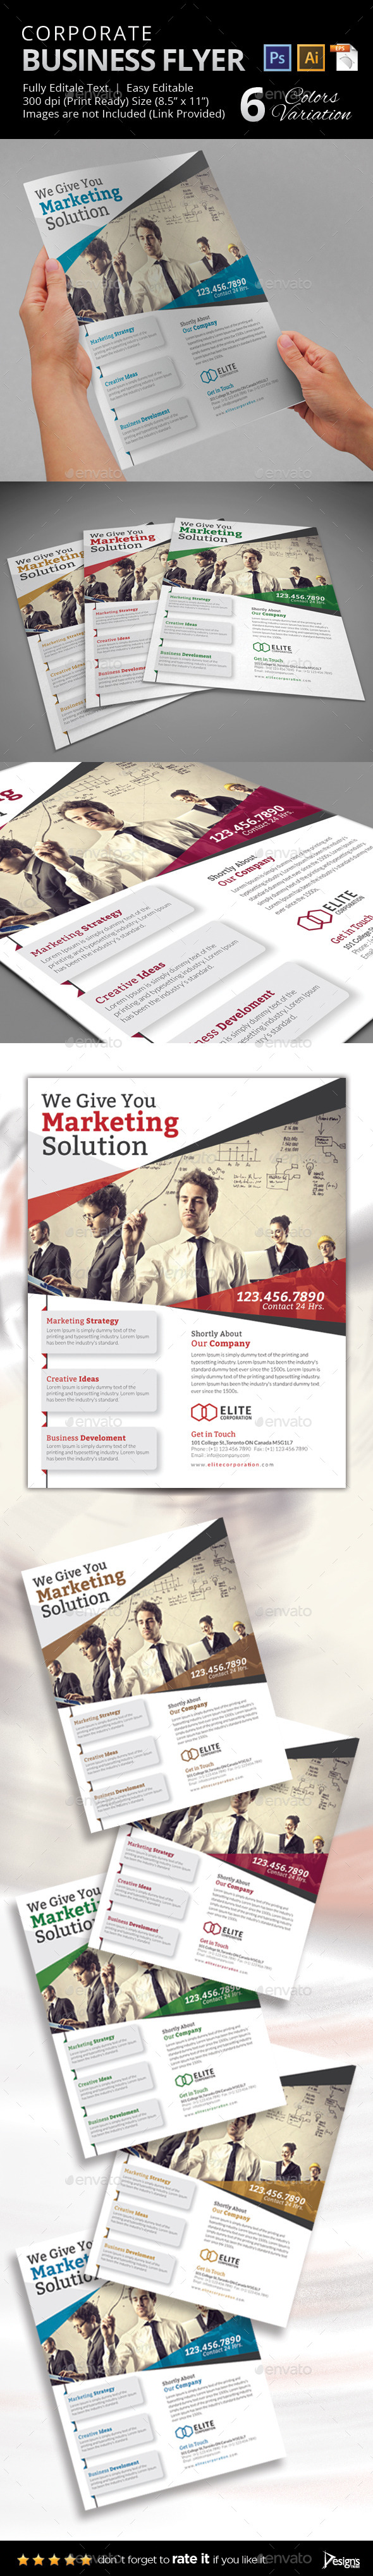 GraphicRiver Multipurpose Business Flyer 36 10750641